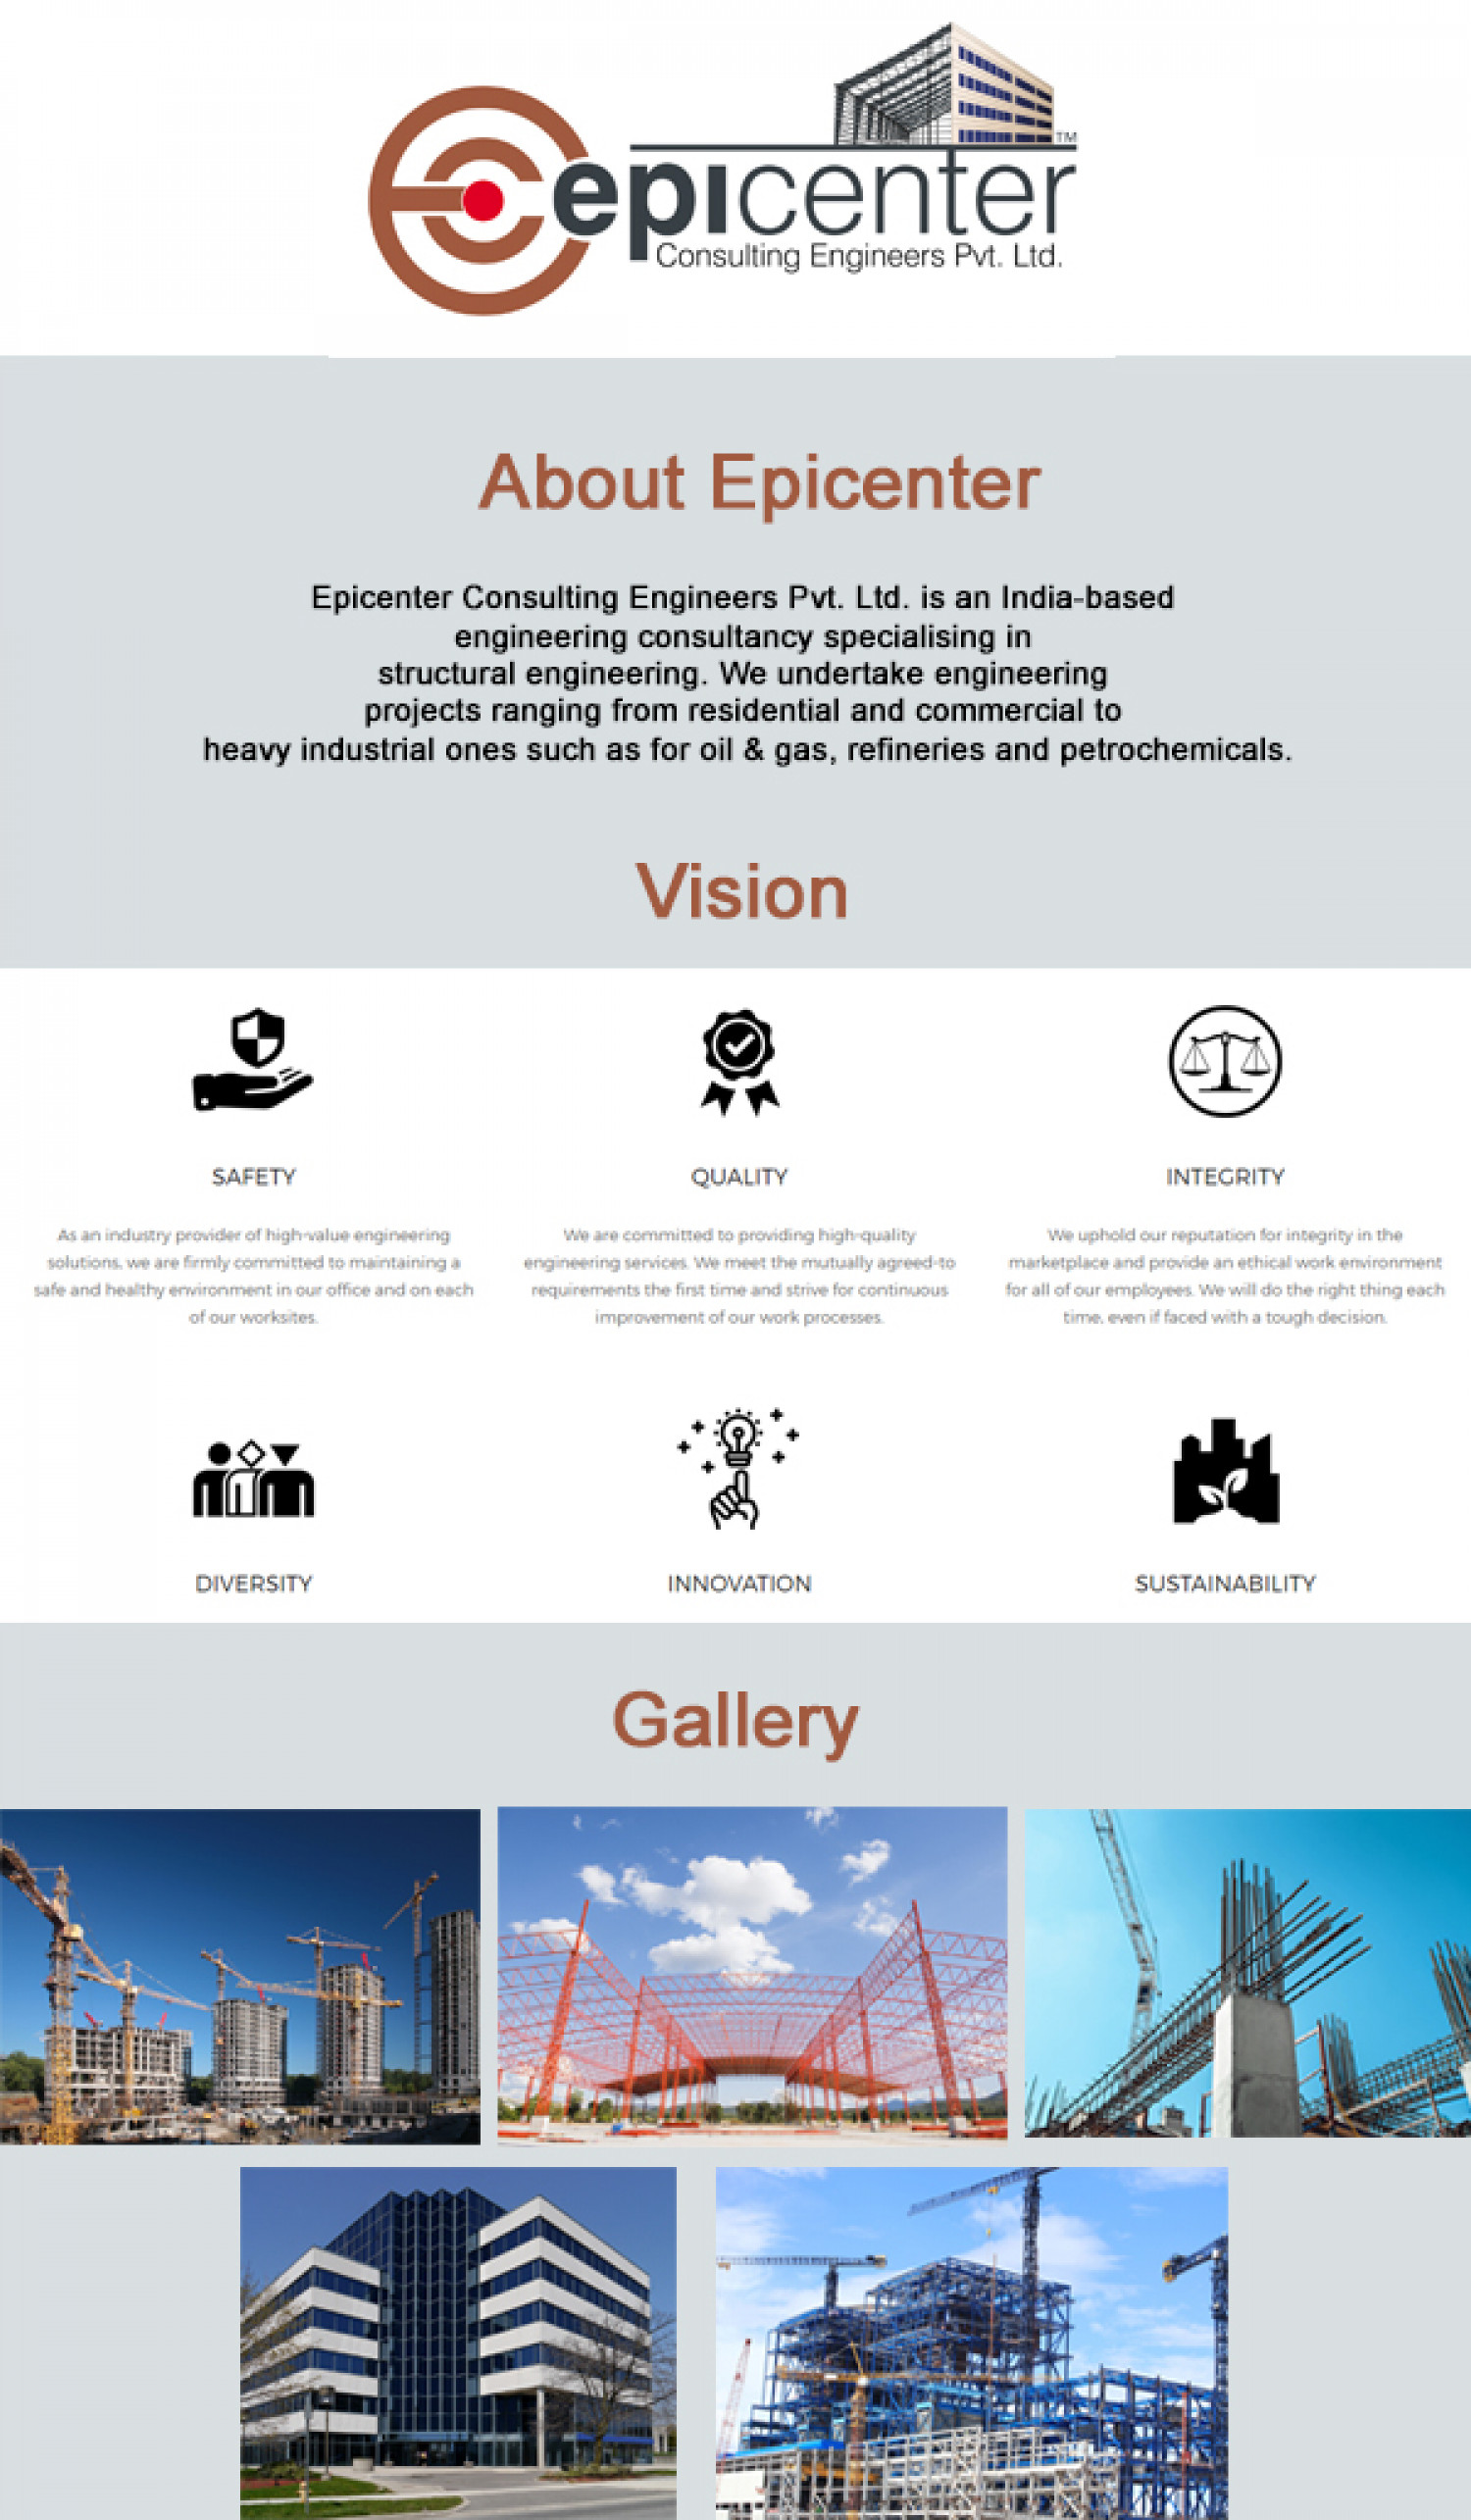 EPICENTER CONSULTANT ENGINEERS PVT LTD - epicenter Infographic